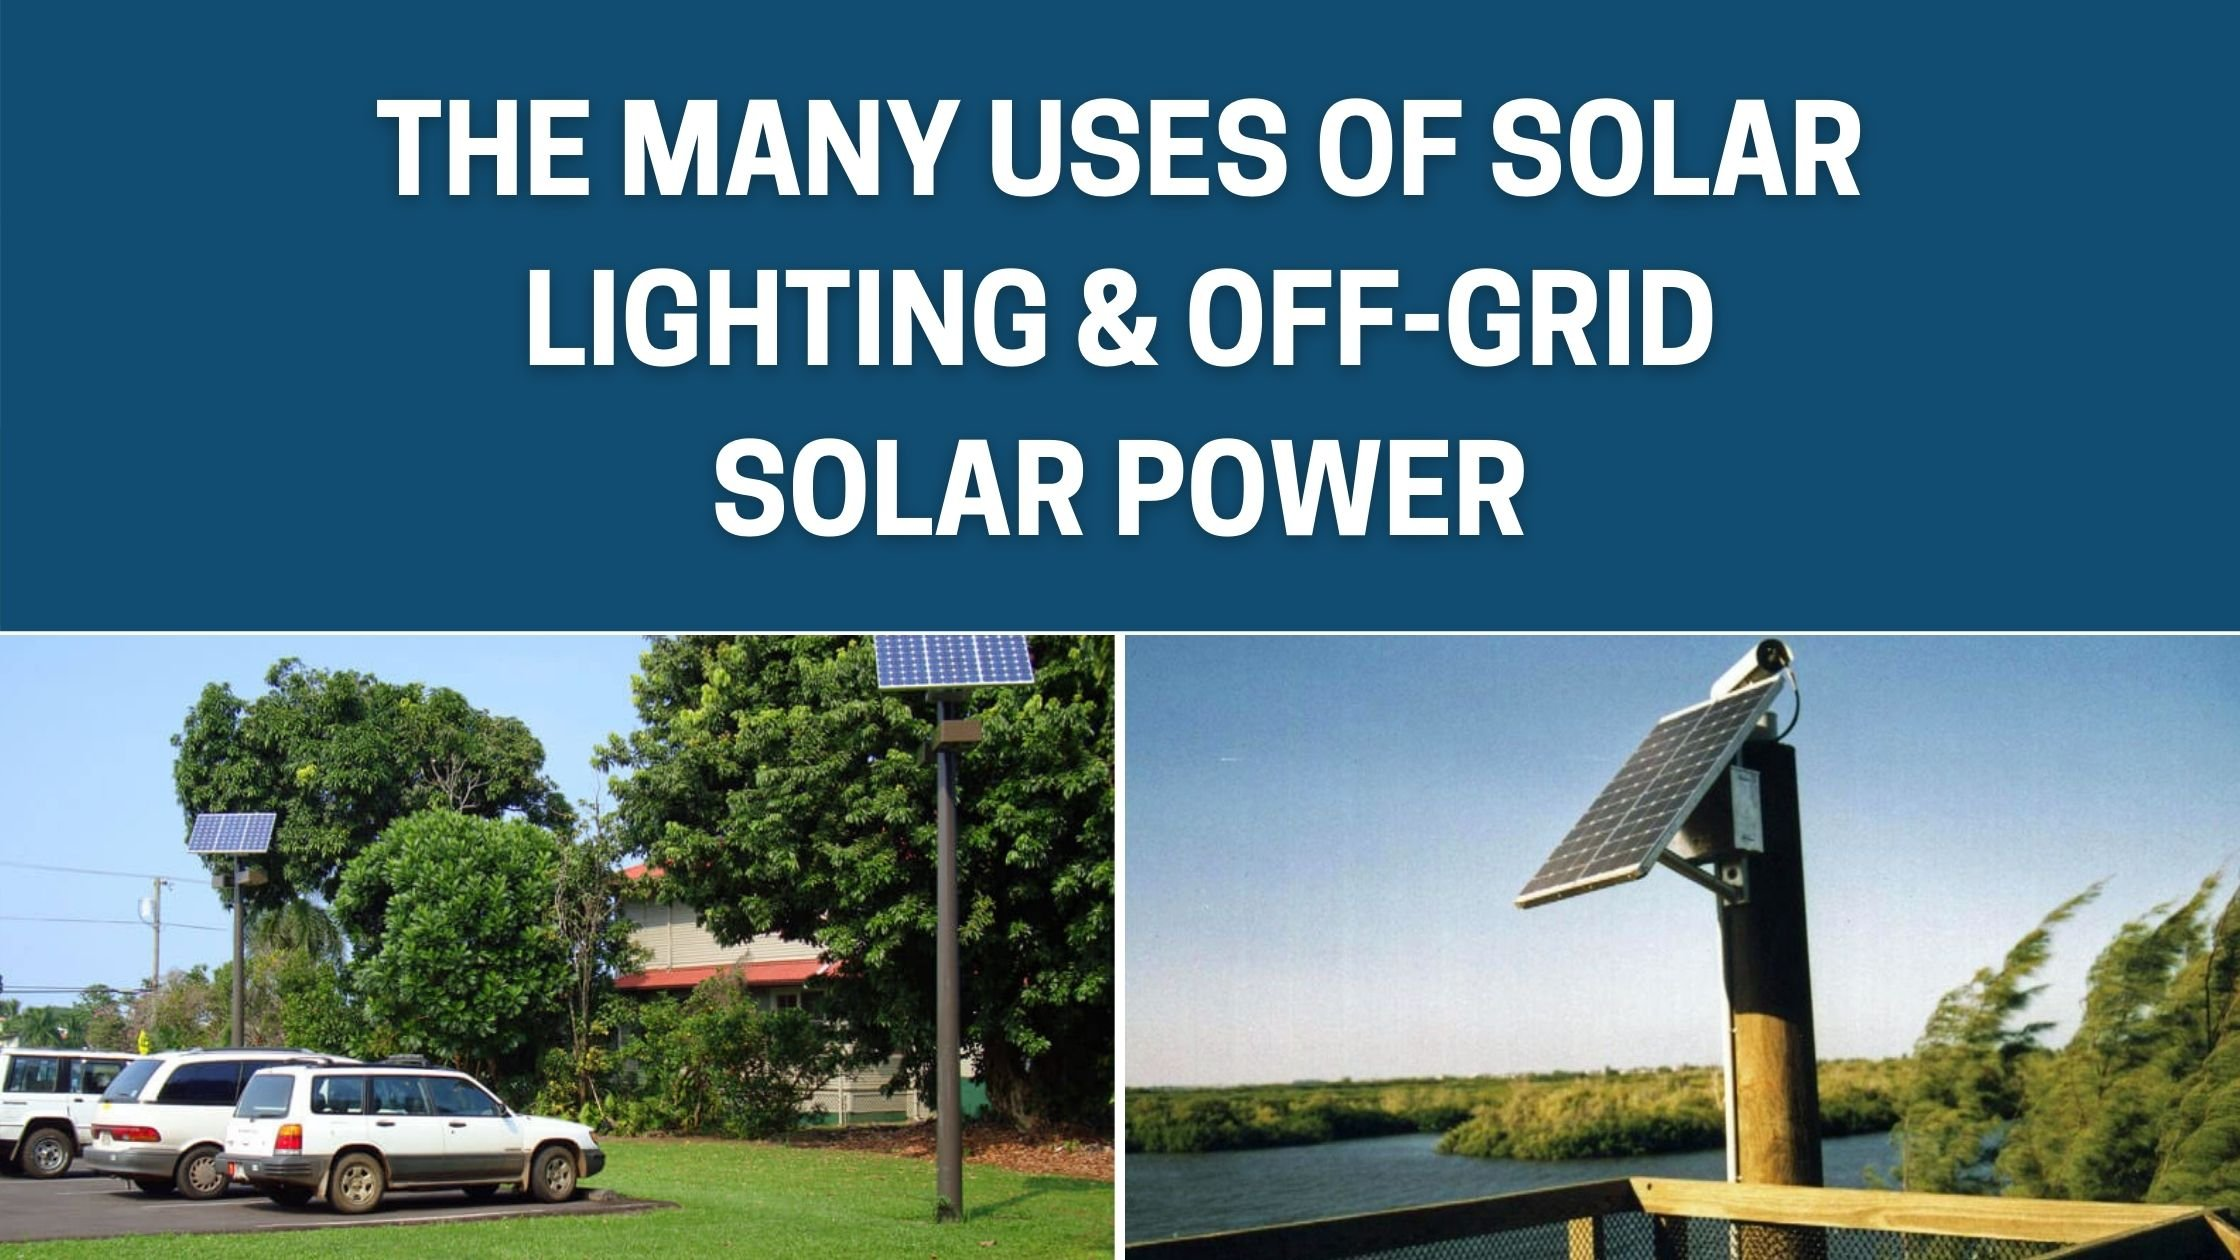 The Many Uses of Solar Lighting & Off-Grid Solar Power